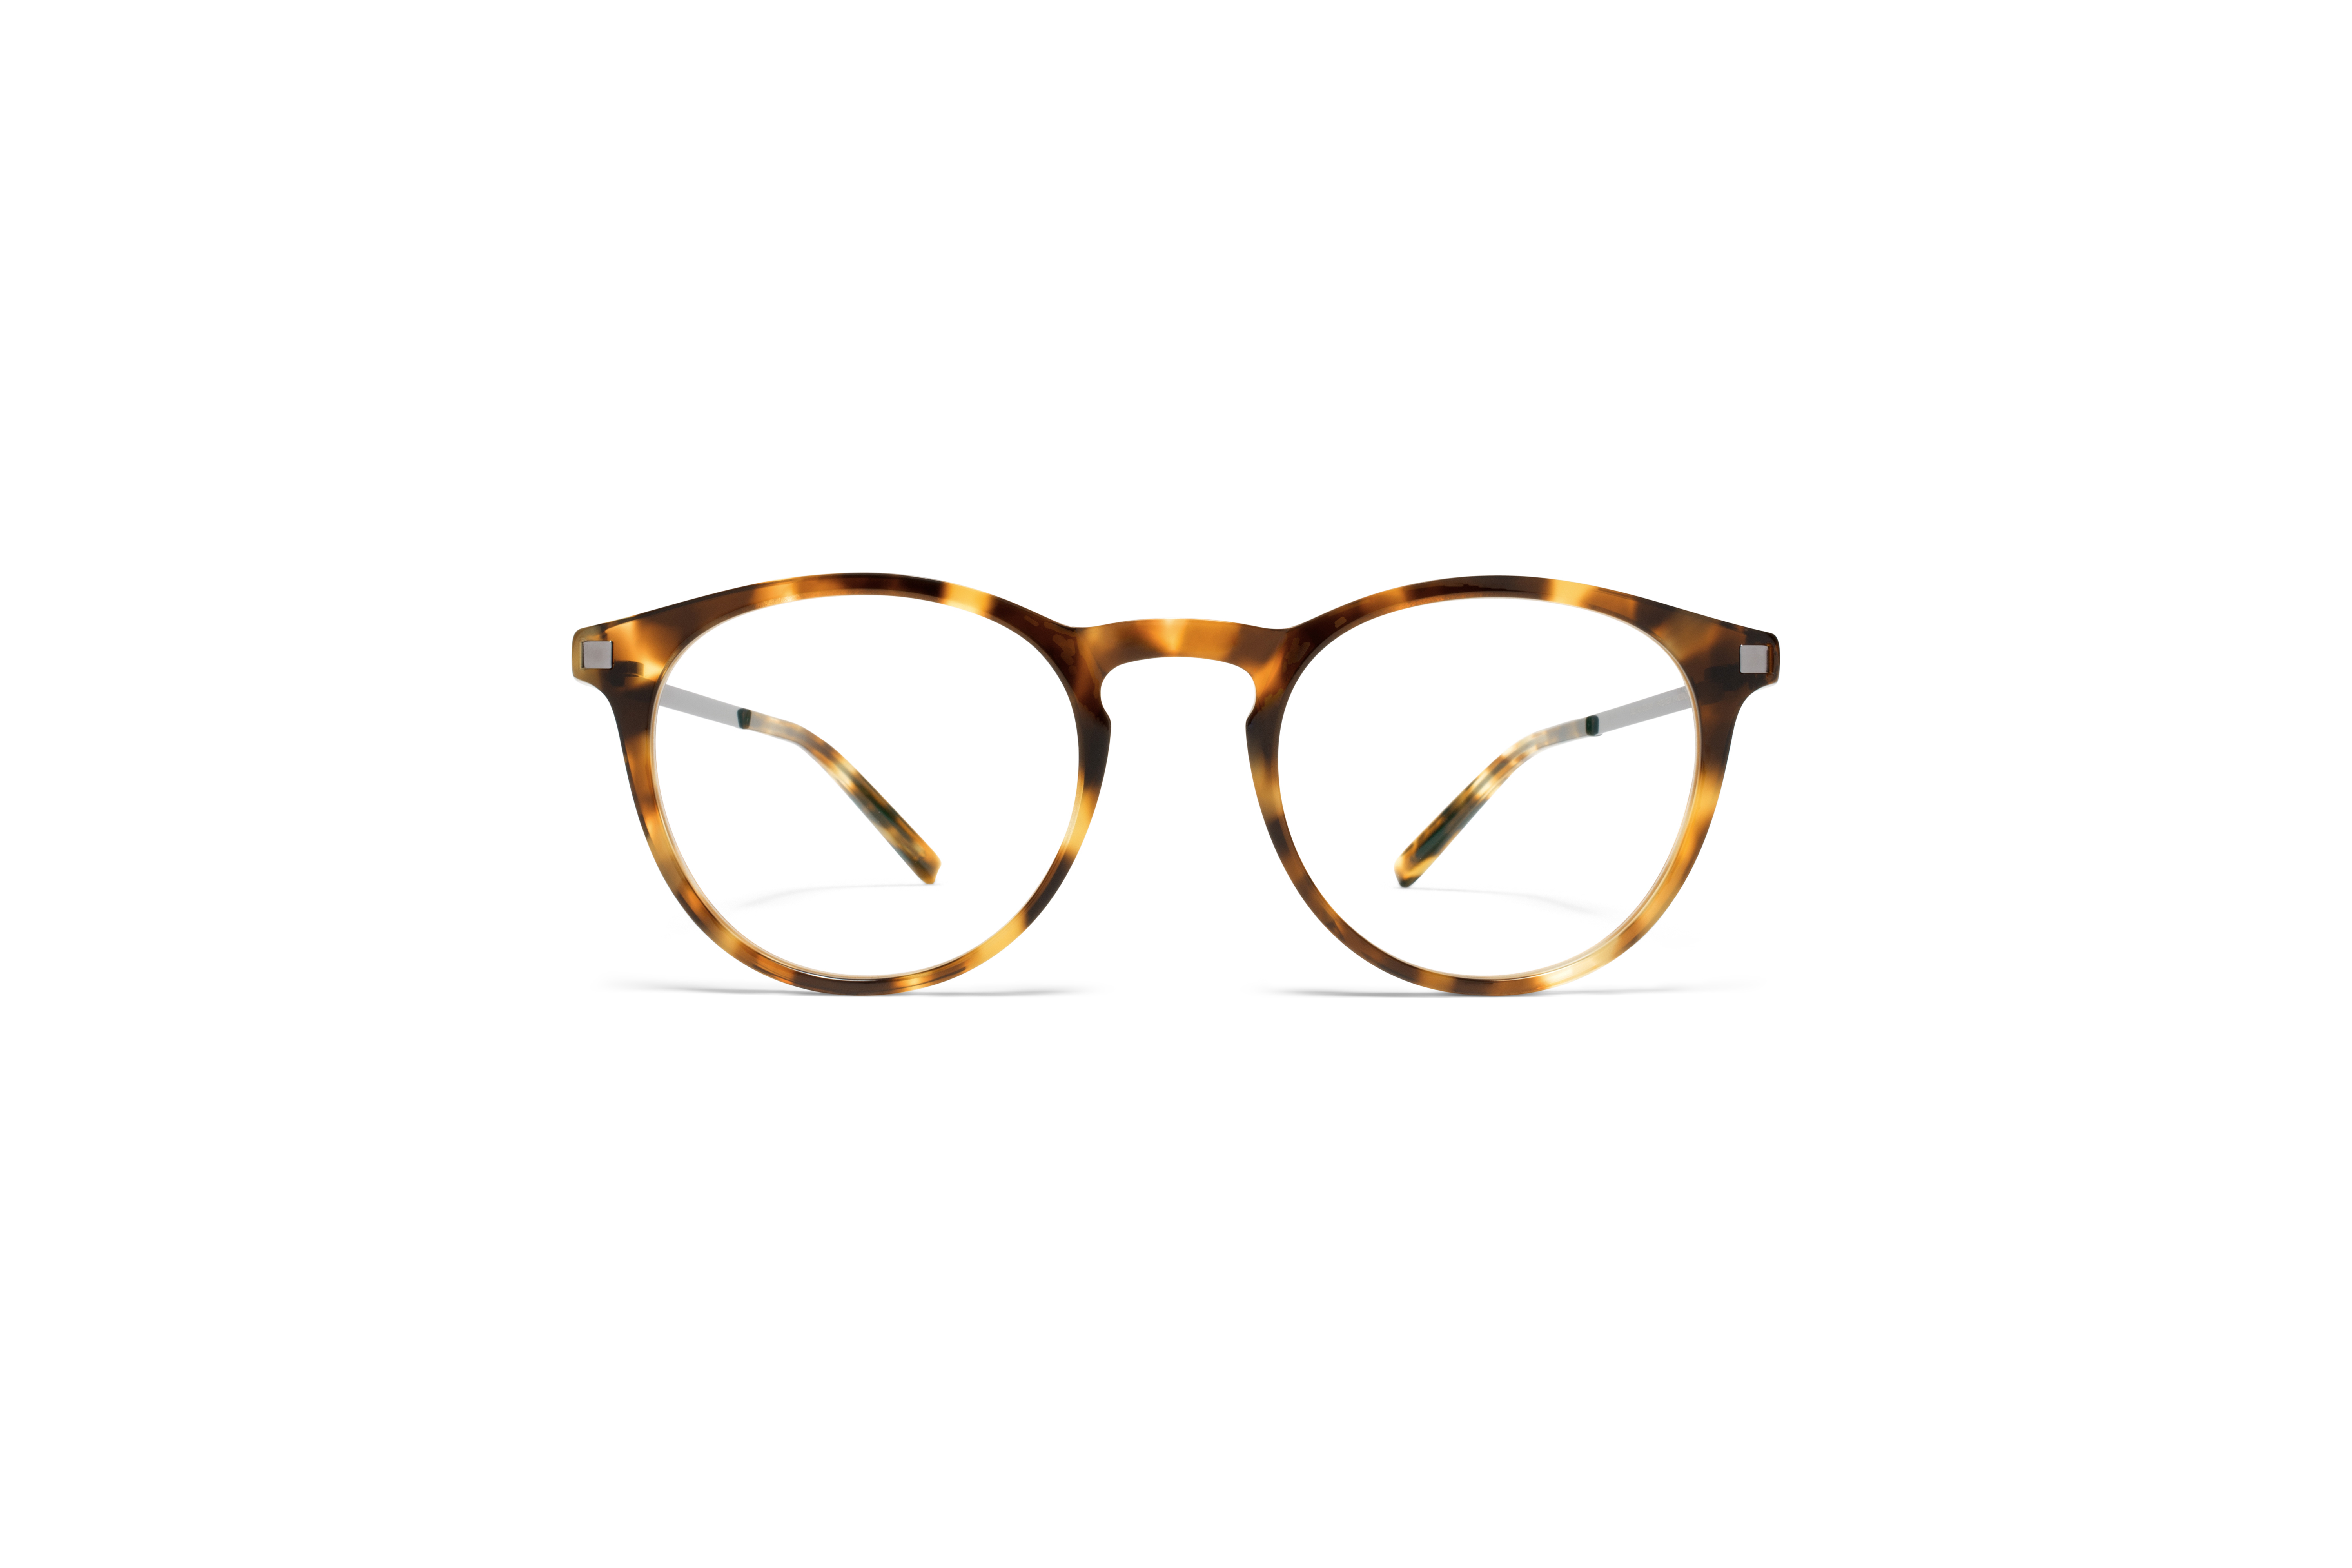 MYKITA Lite Acetate Rx Talini C3 Cocoa Sprinkles S58d3085a33dd5